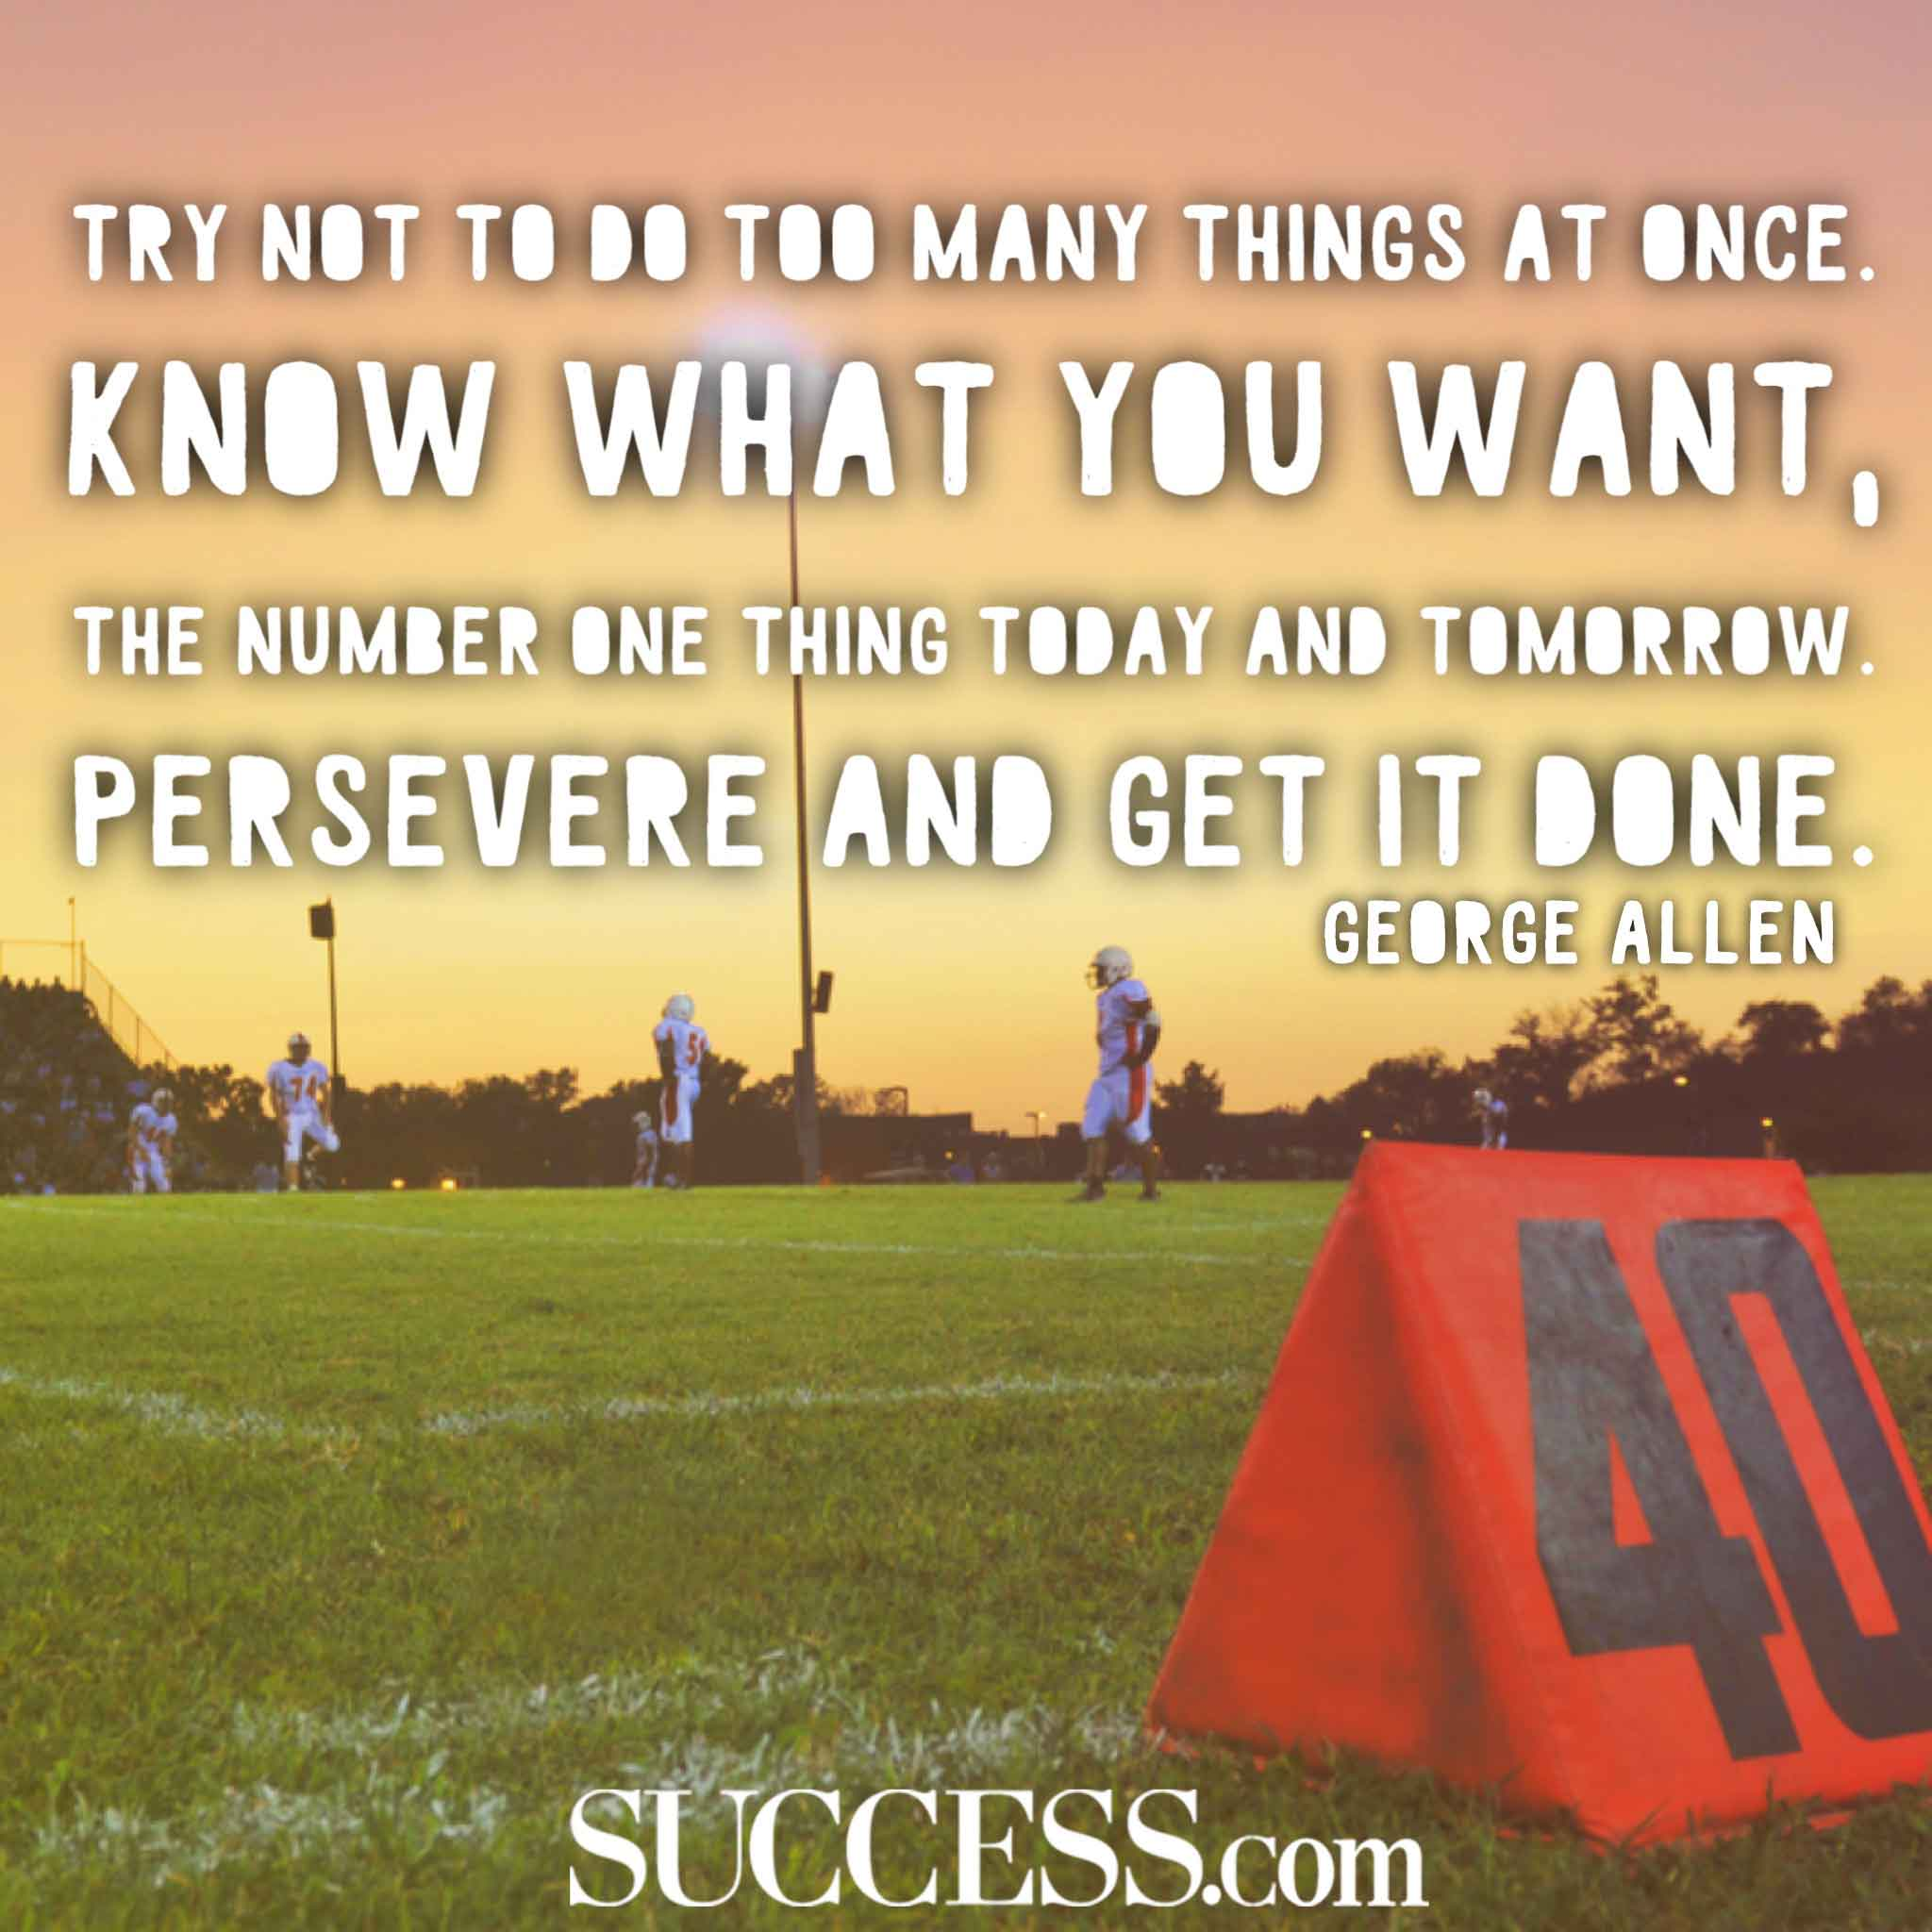 Persistence Motivational Quotes: 20 Motivational Quotes By The Most Inspiring NFL Coaches